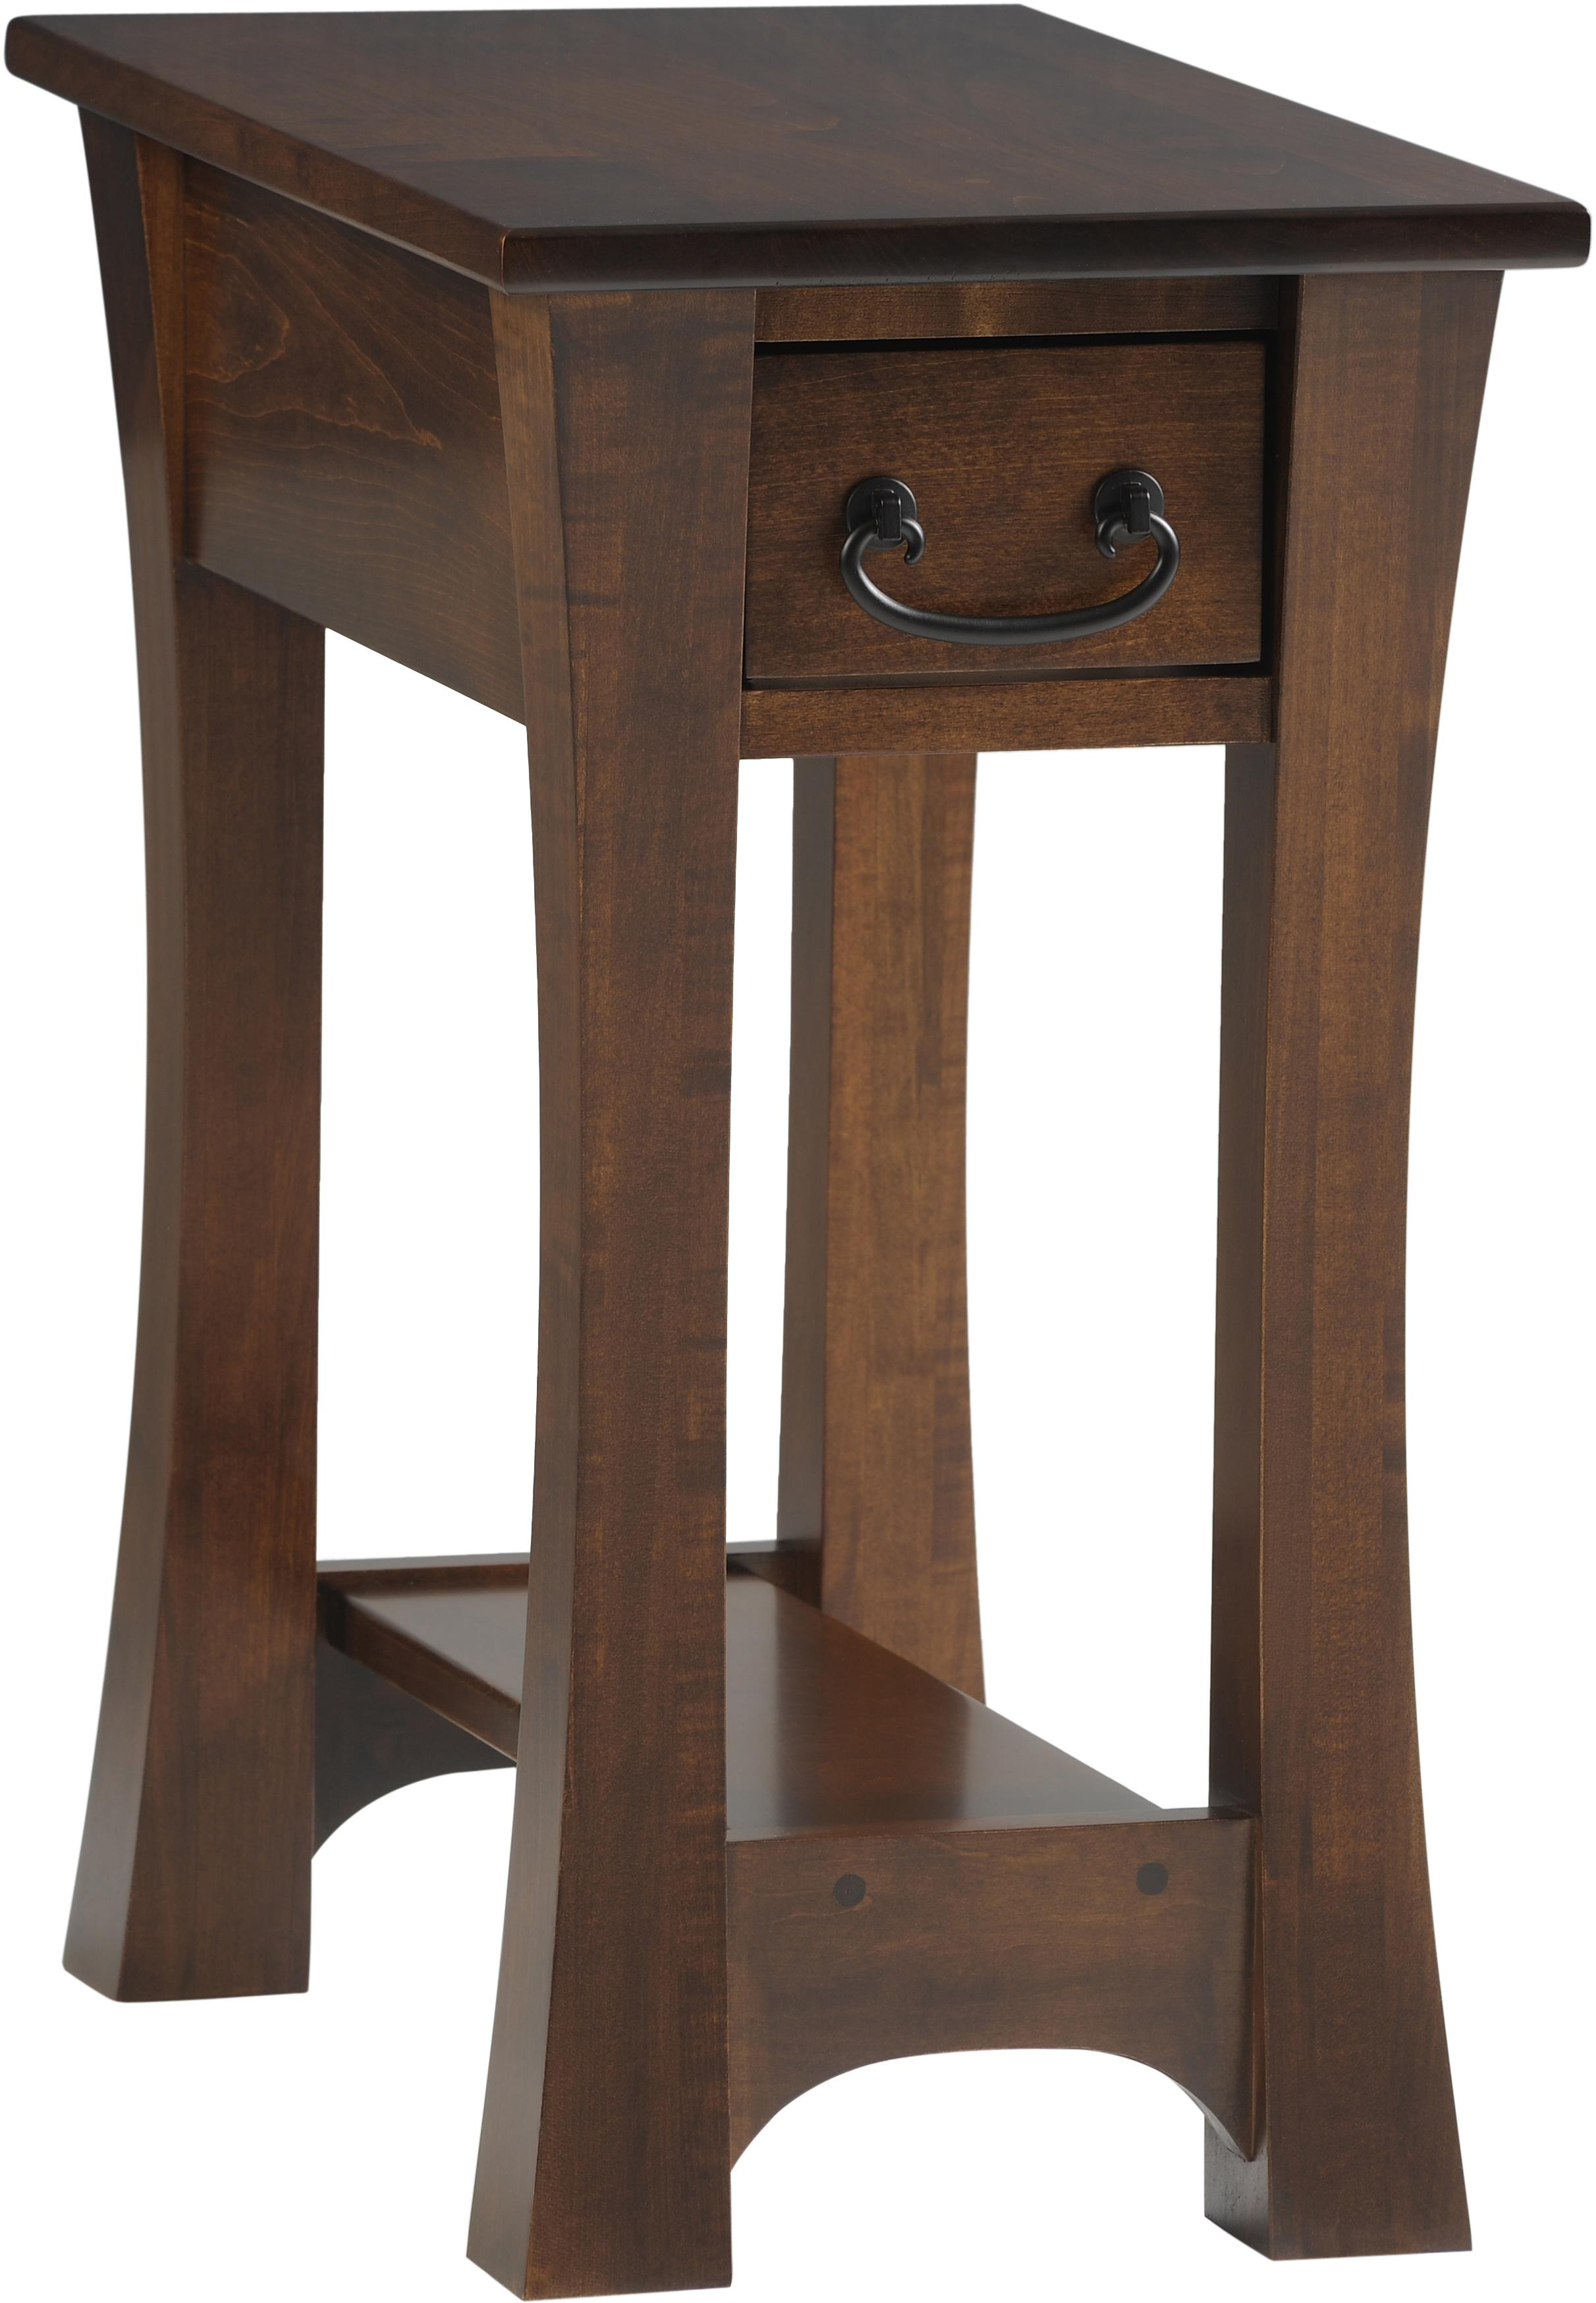 Woodbury Chairside Table by Y & T Woodcraft at Saugerties Furniture Mart